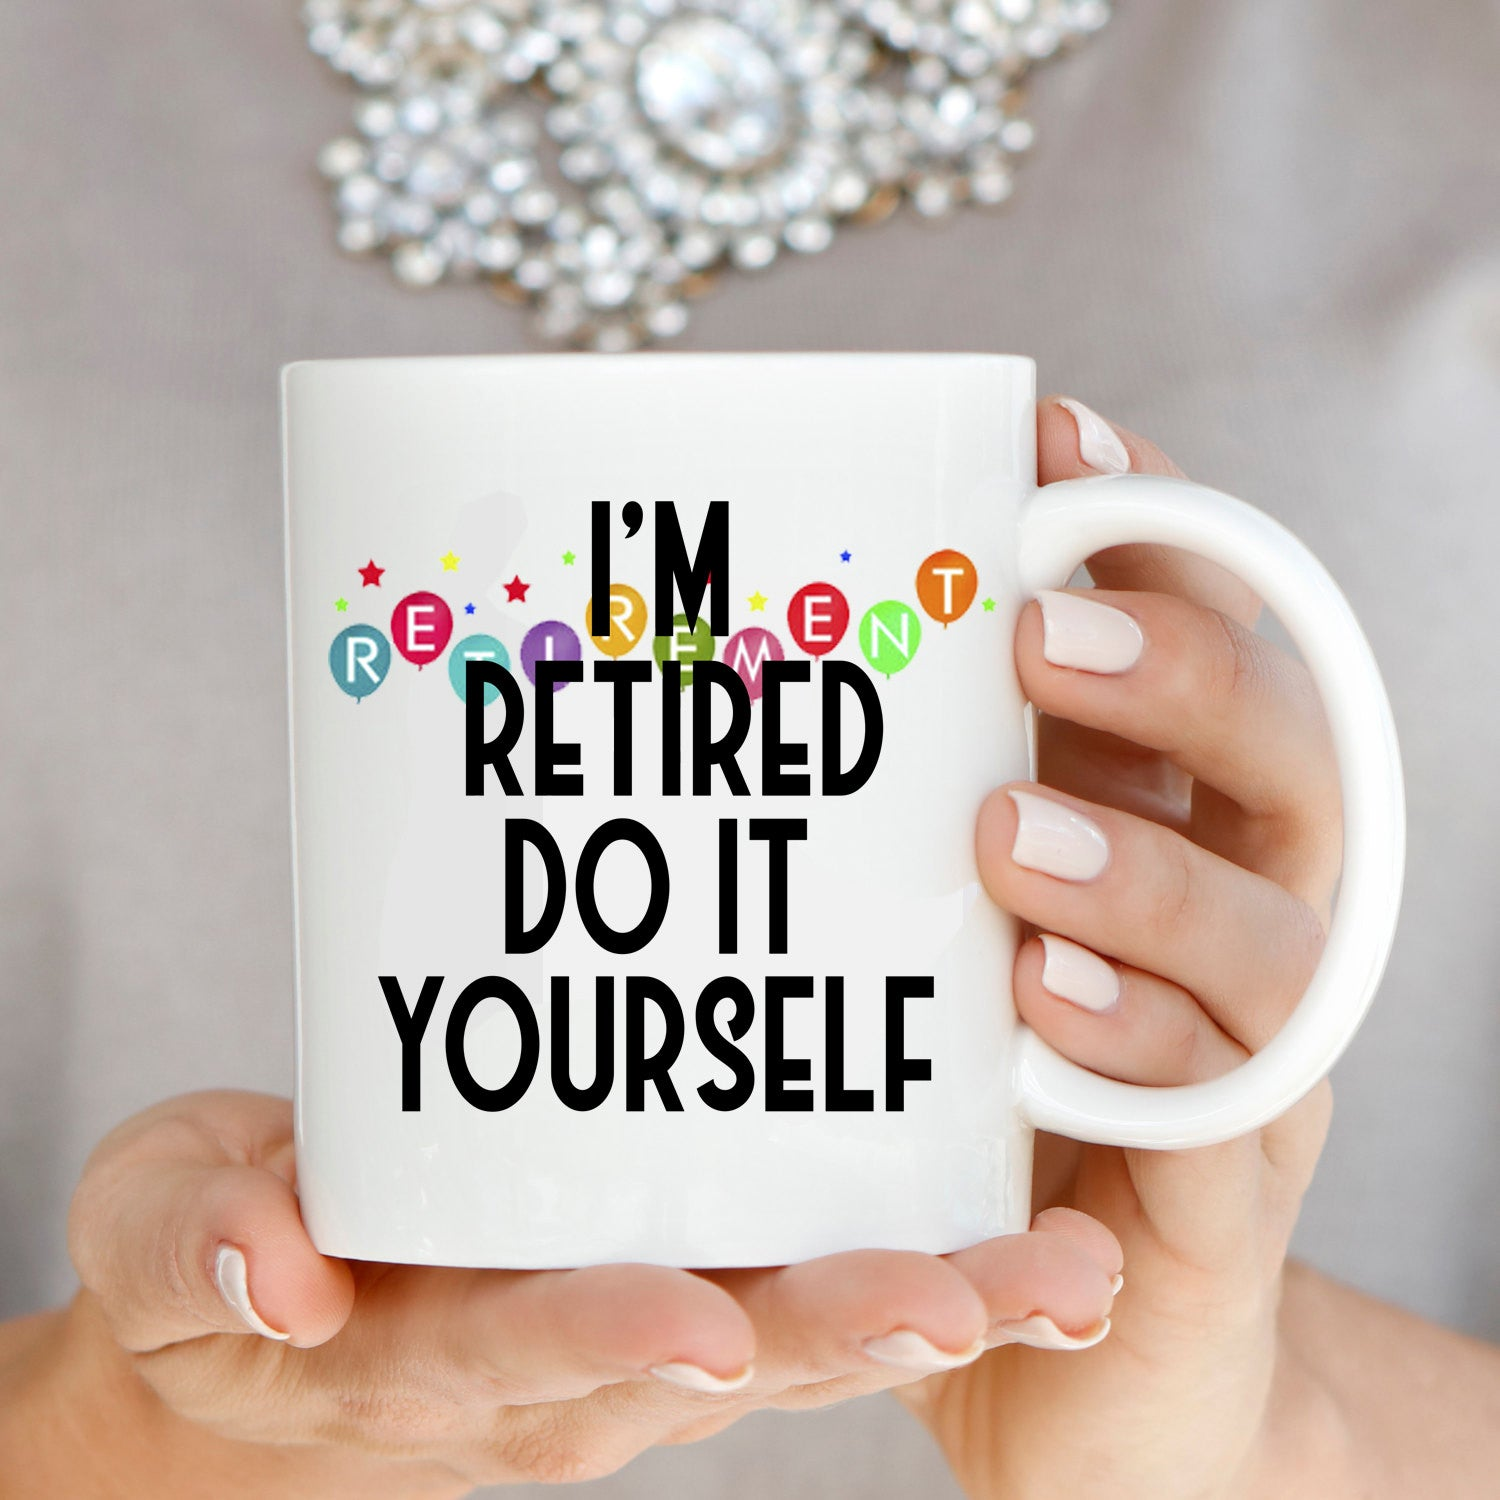 Humorous retirement gag party supplies gifts mug for men and women i humorous retirement gag party supplies gifts mug for men and women im retired do it yourself coffee cup printed on both sides solutioingenieria